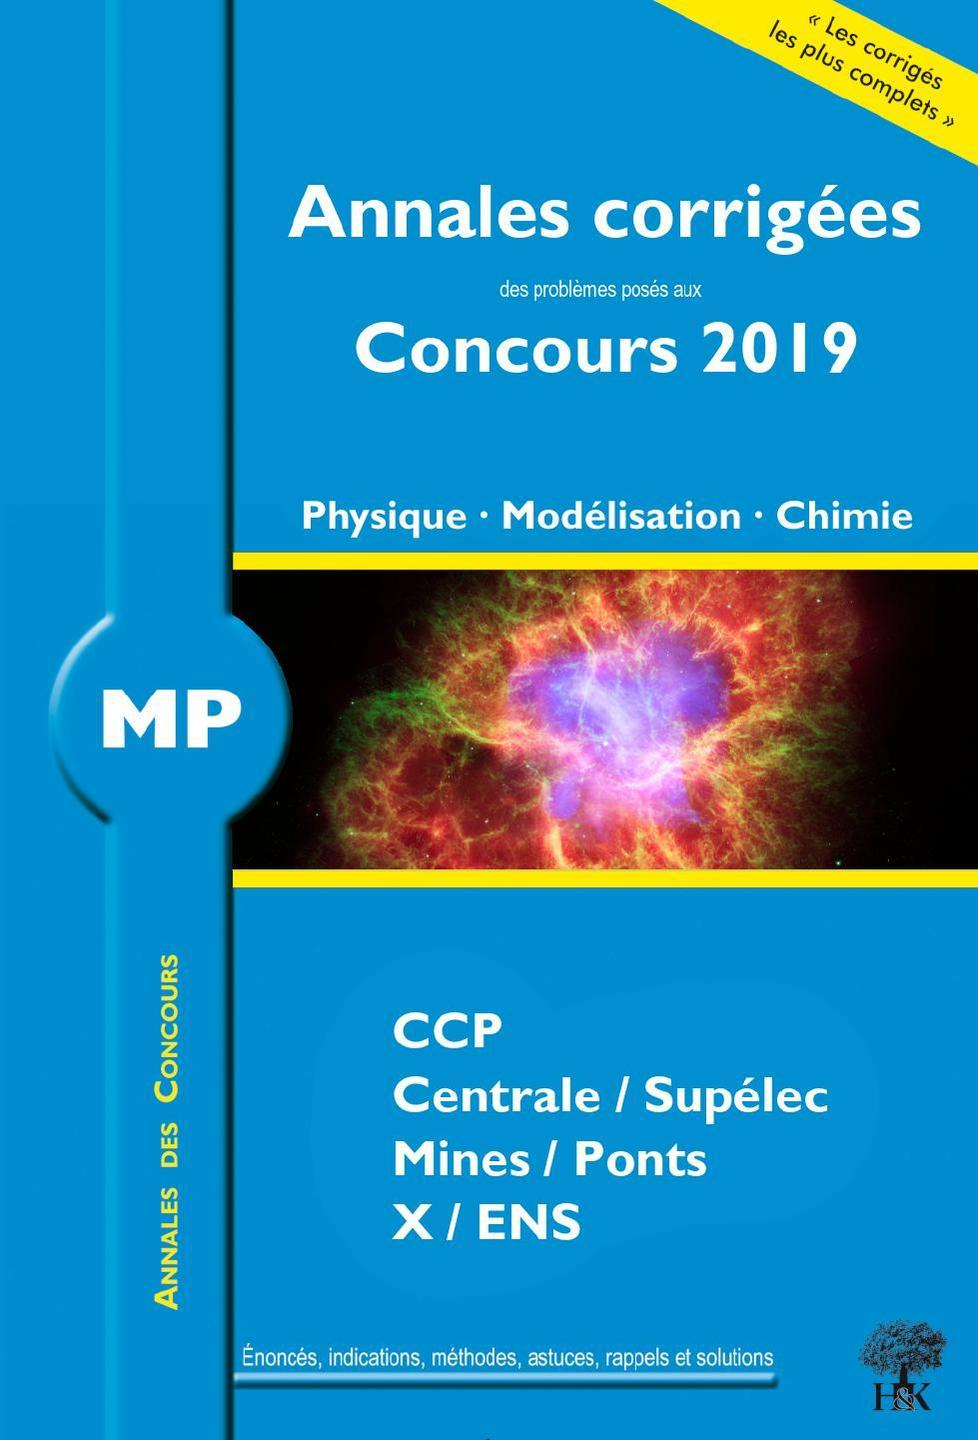 ANNALES CORRIGEES MP PROBLEMES CONCOURS 2019 PHYSIQUE MODELISATION CHIMIE